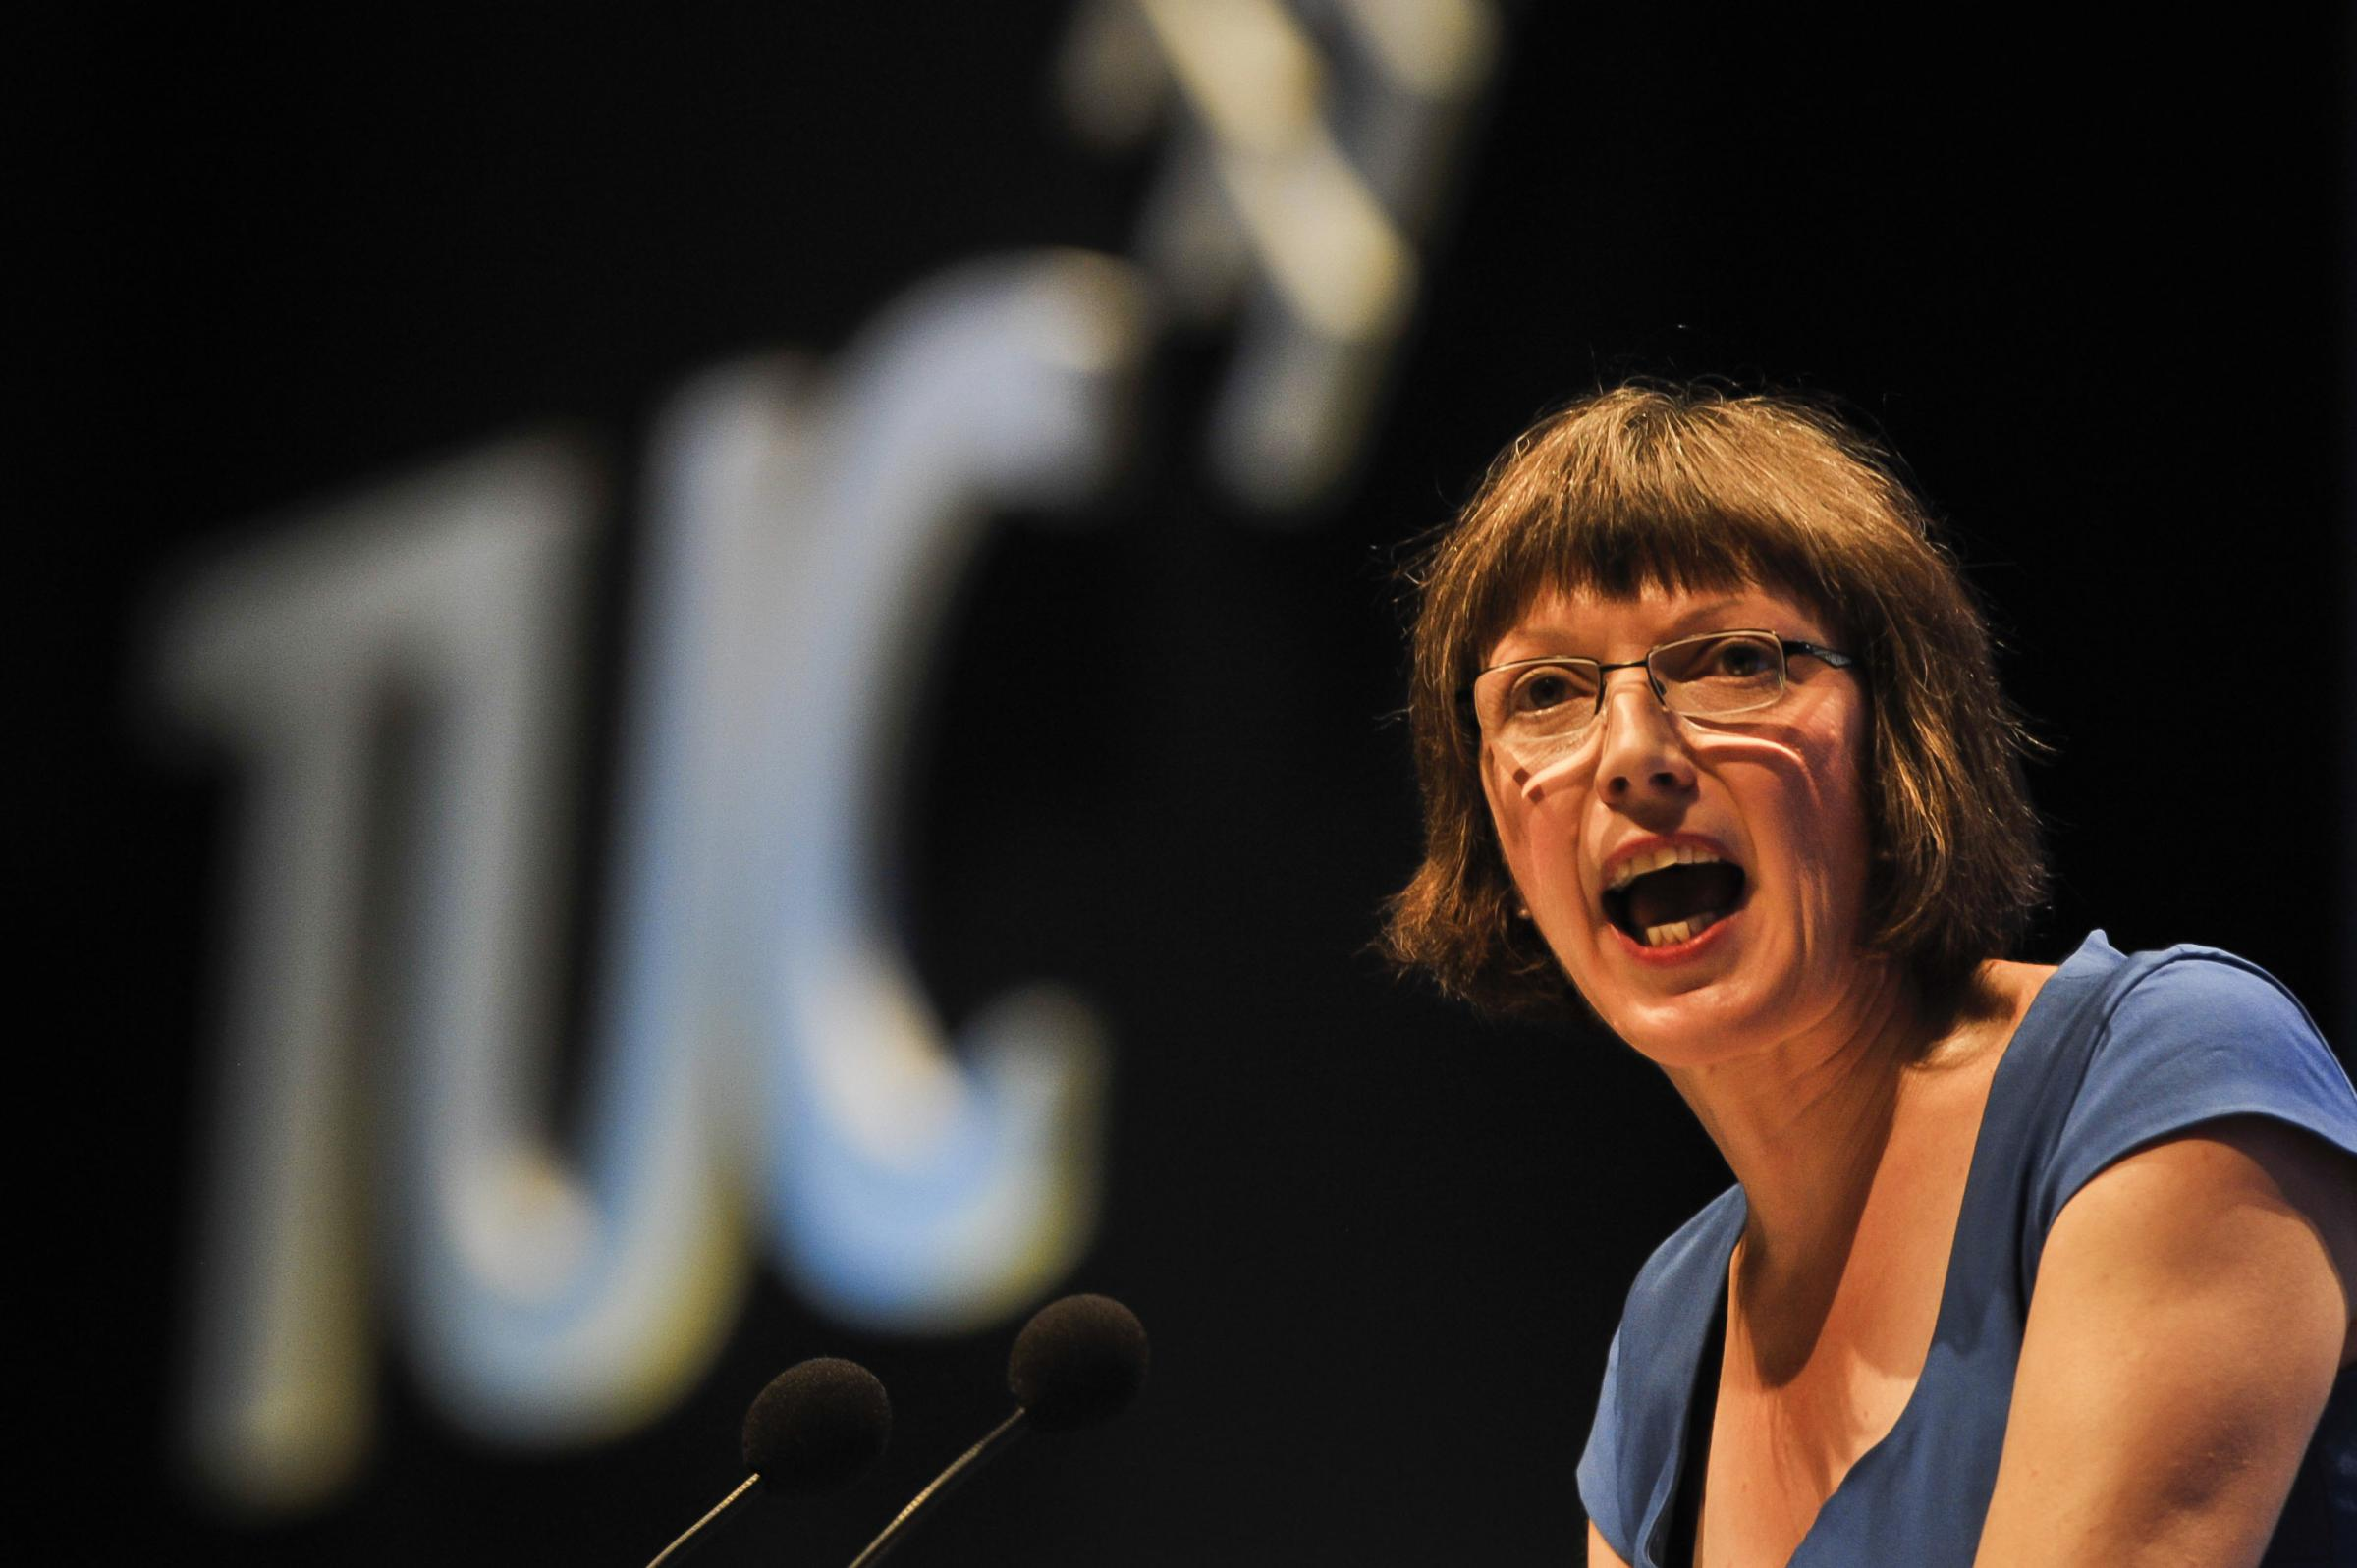 TUC General Secretary Frances O'Grady reminded employers it is illegal to not give someone a job on the grounds that they may have children in the future.